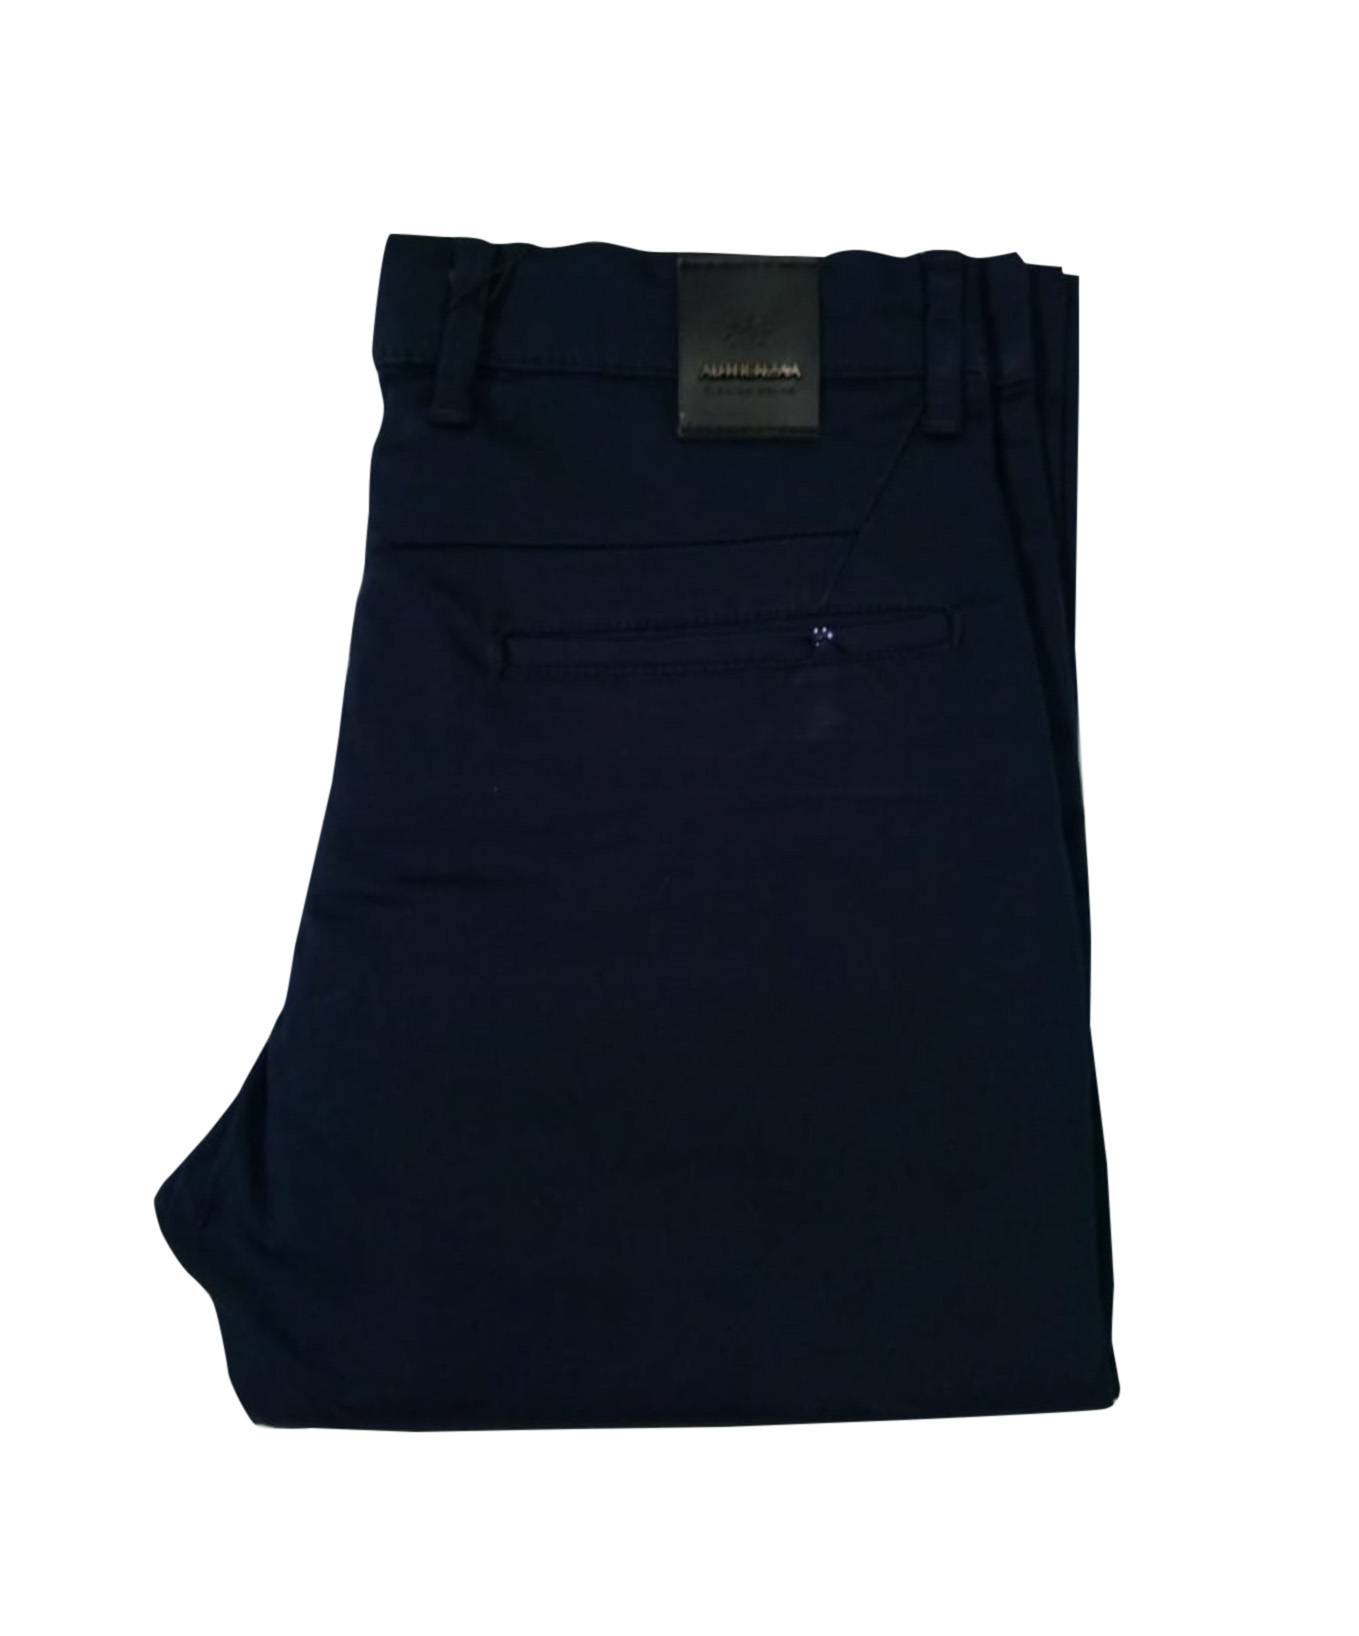 UTD SEP SATIN 02 2019-NAVY BLUE MEN CASUAL TROUSER